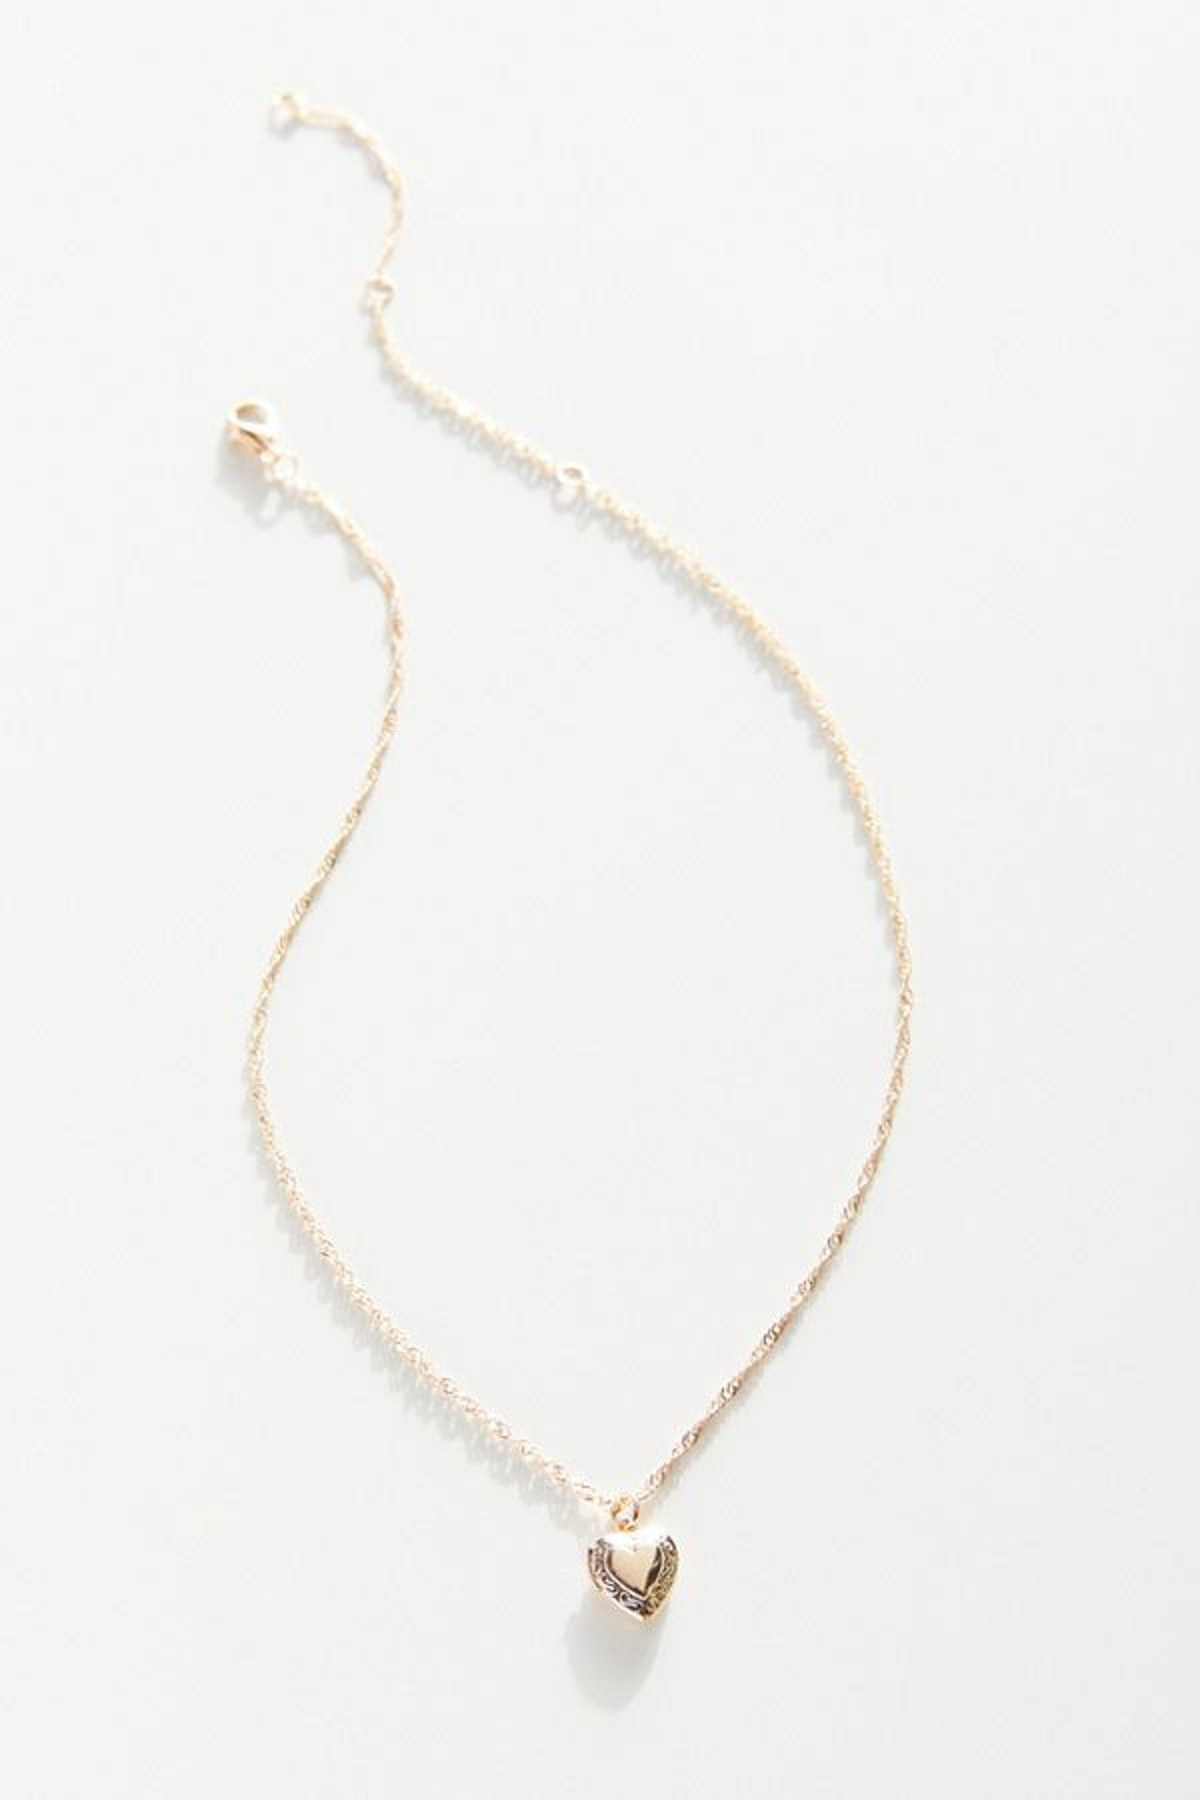 Urban Outfitters Nicola Delicate Locket Necklace